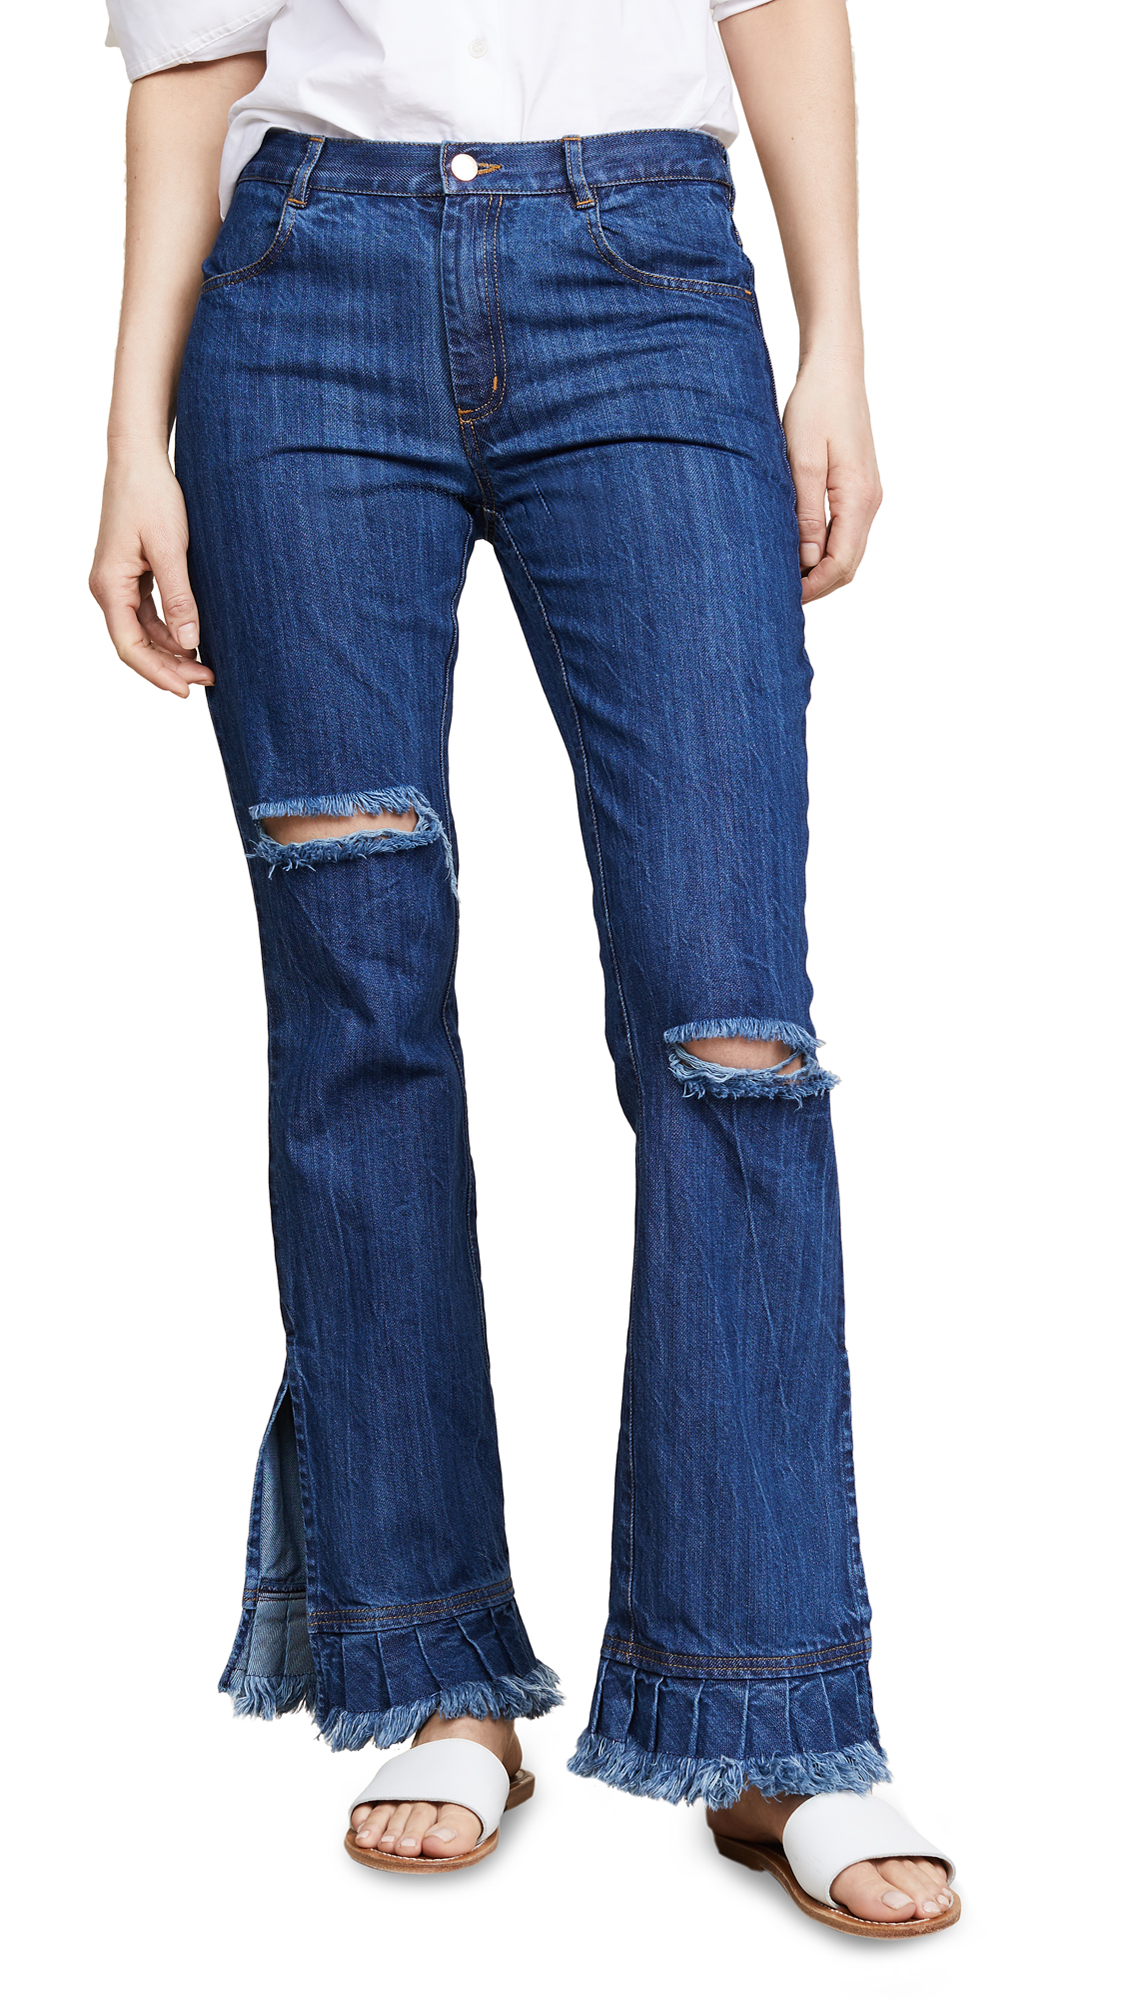 Maggie Marilyn The Bob Jeans